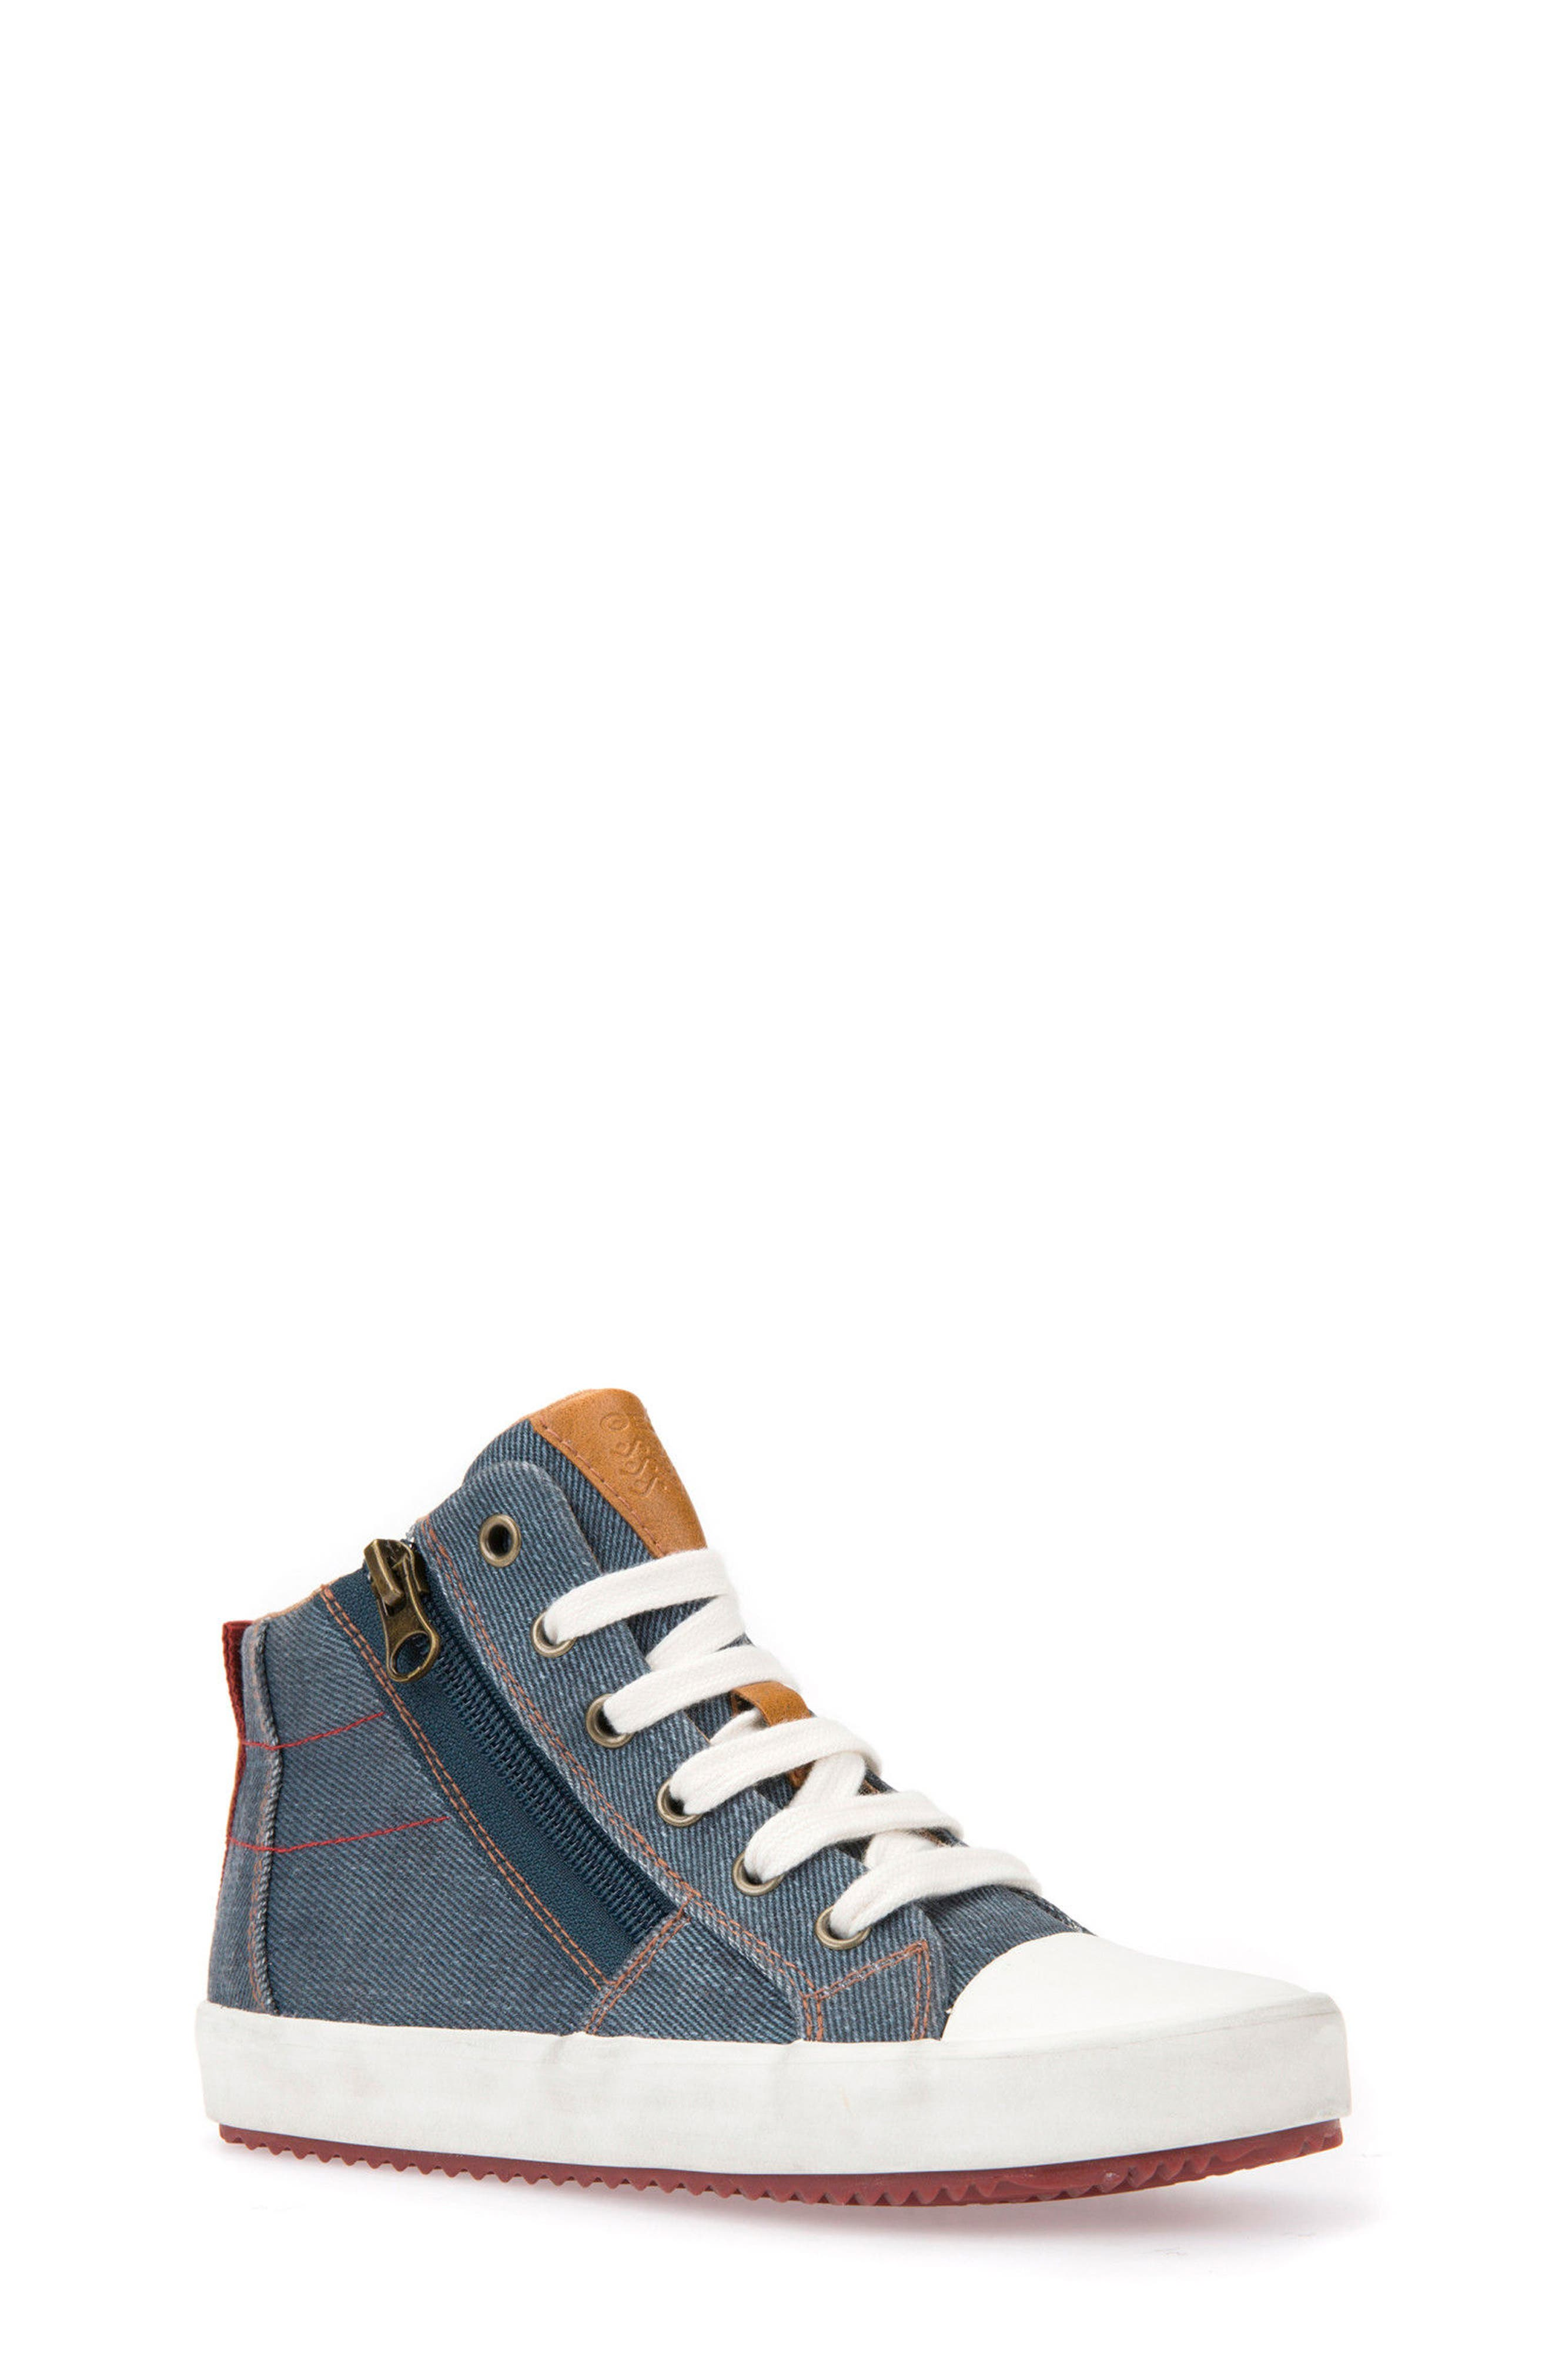 Alonisso High Top Sneaker,                             Main thumbnail 1, color,                             Blue/ Dark Red